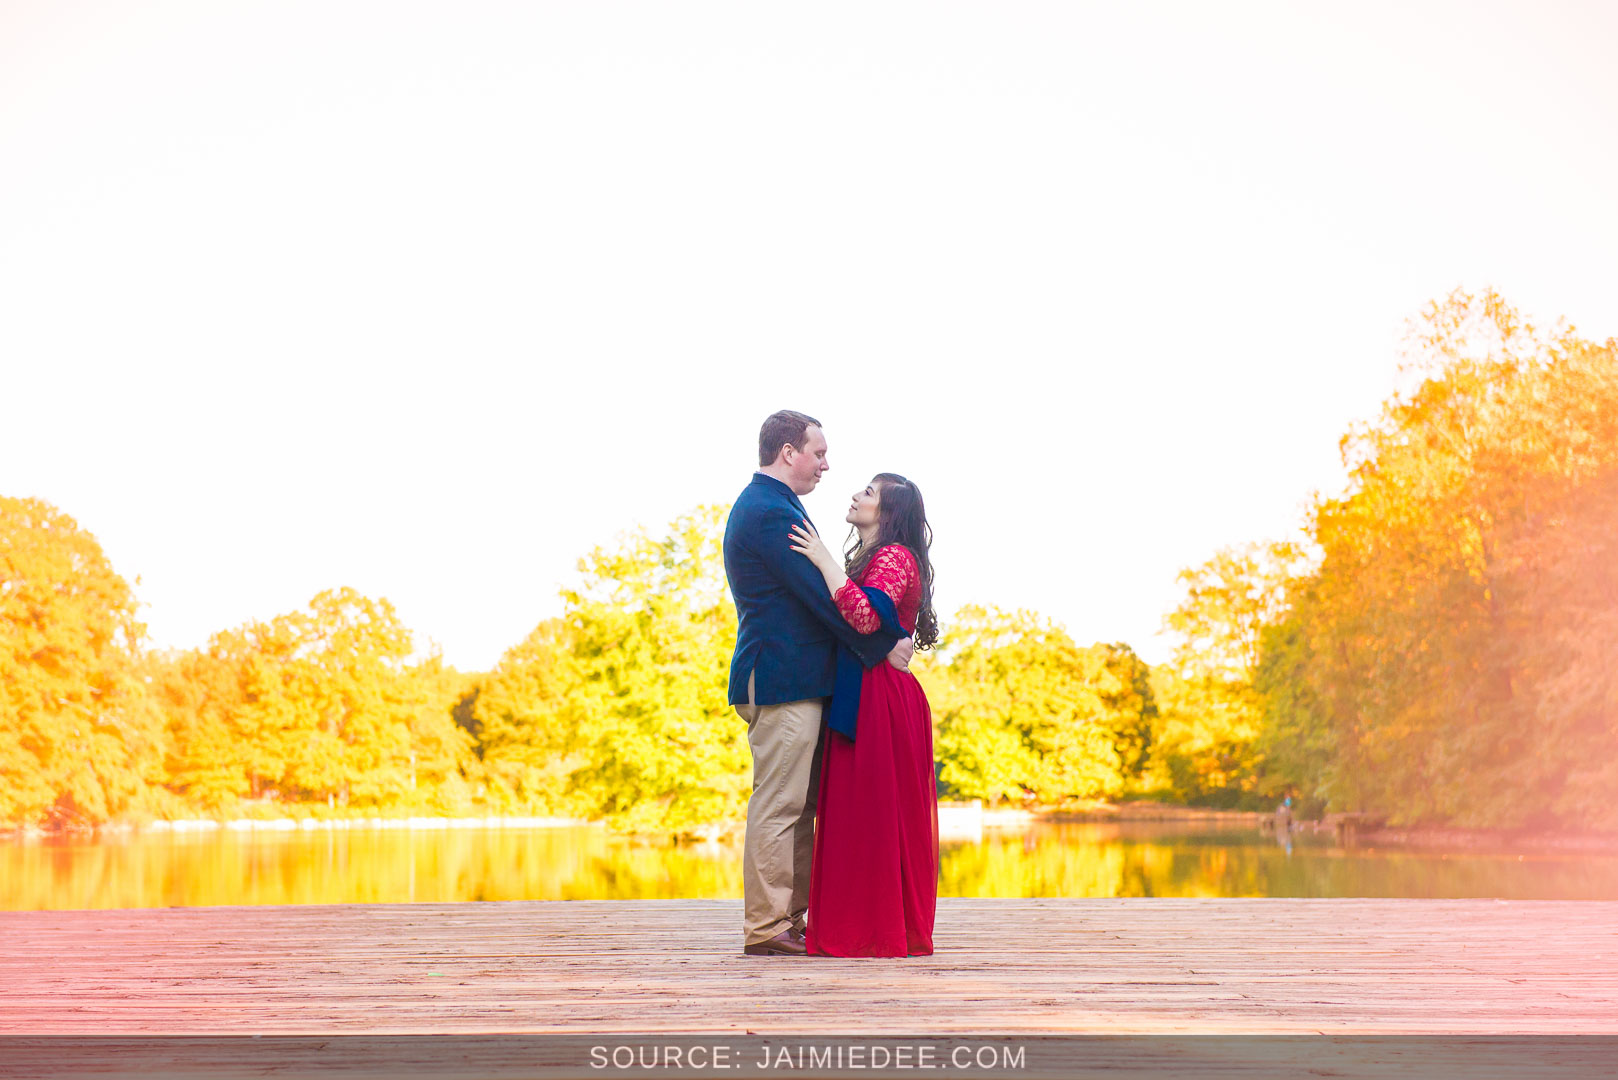 piedmont park photoshoot in atlanta, GA